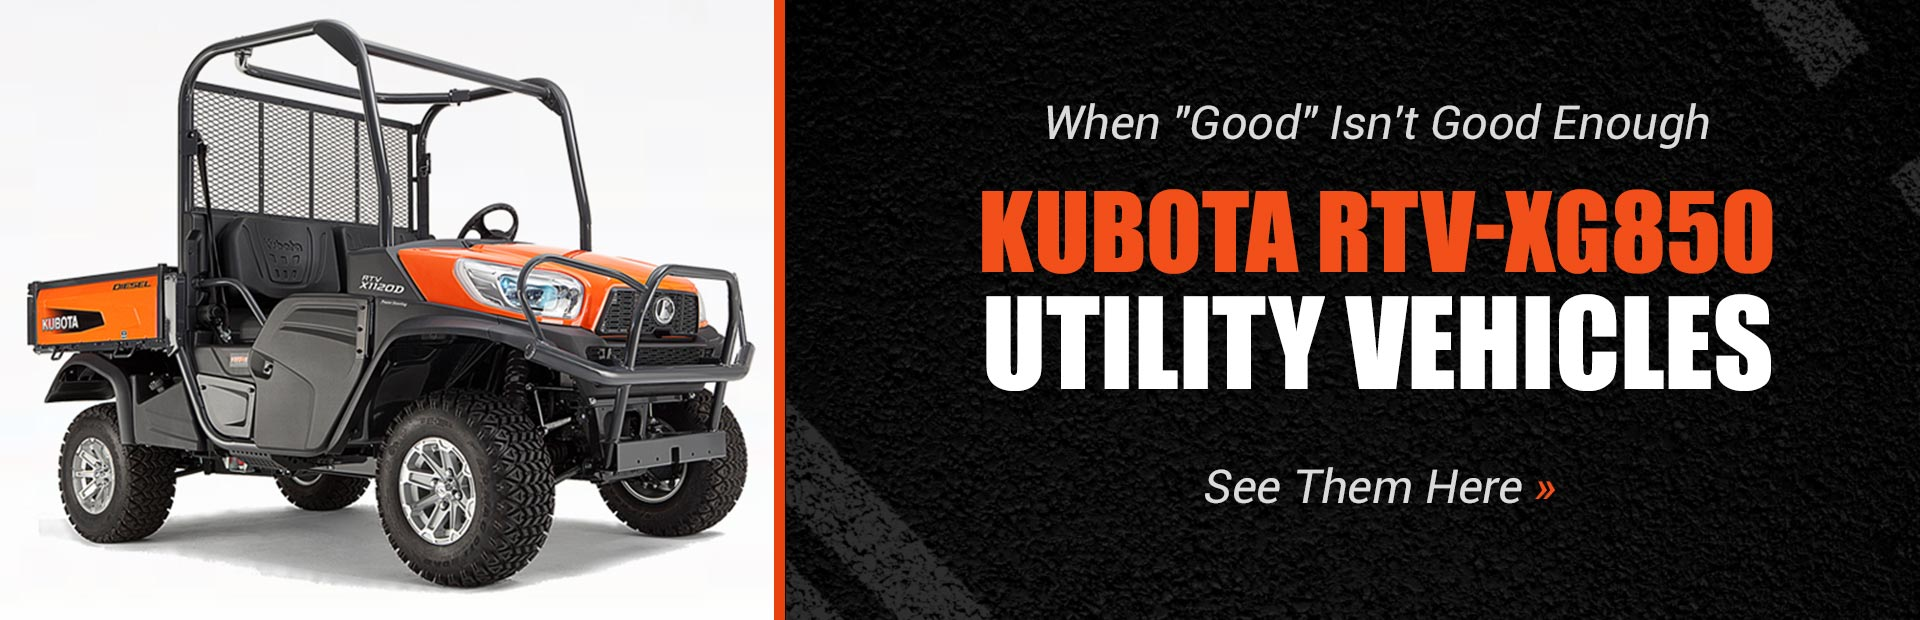 Kubota RTV-XG850 Utility Vehicles: Click here to view the models.